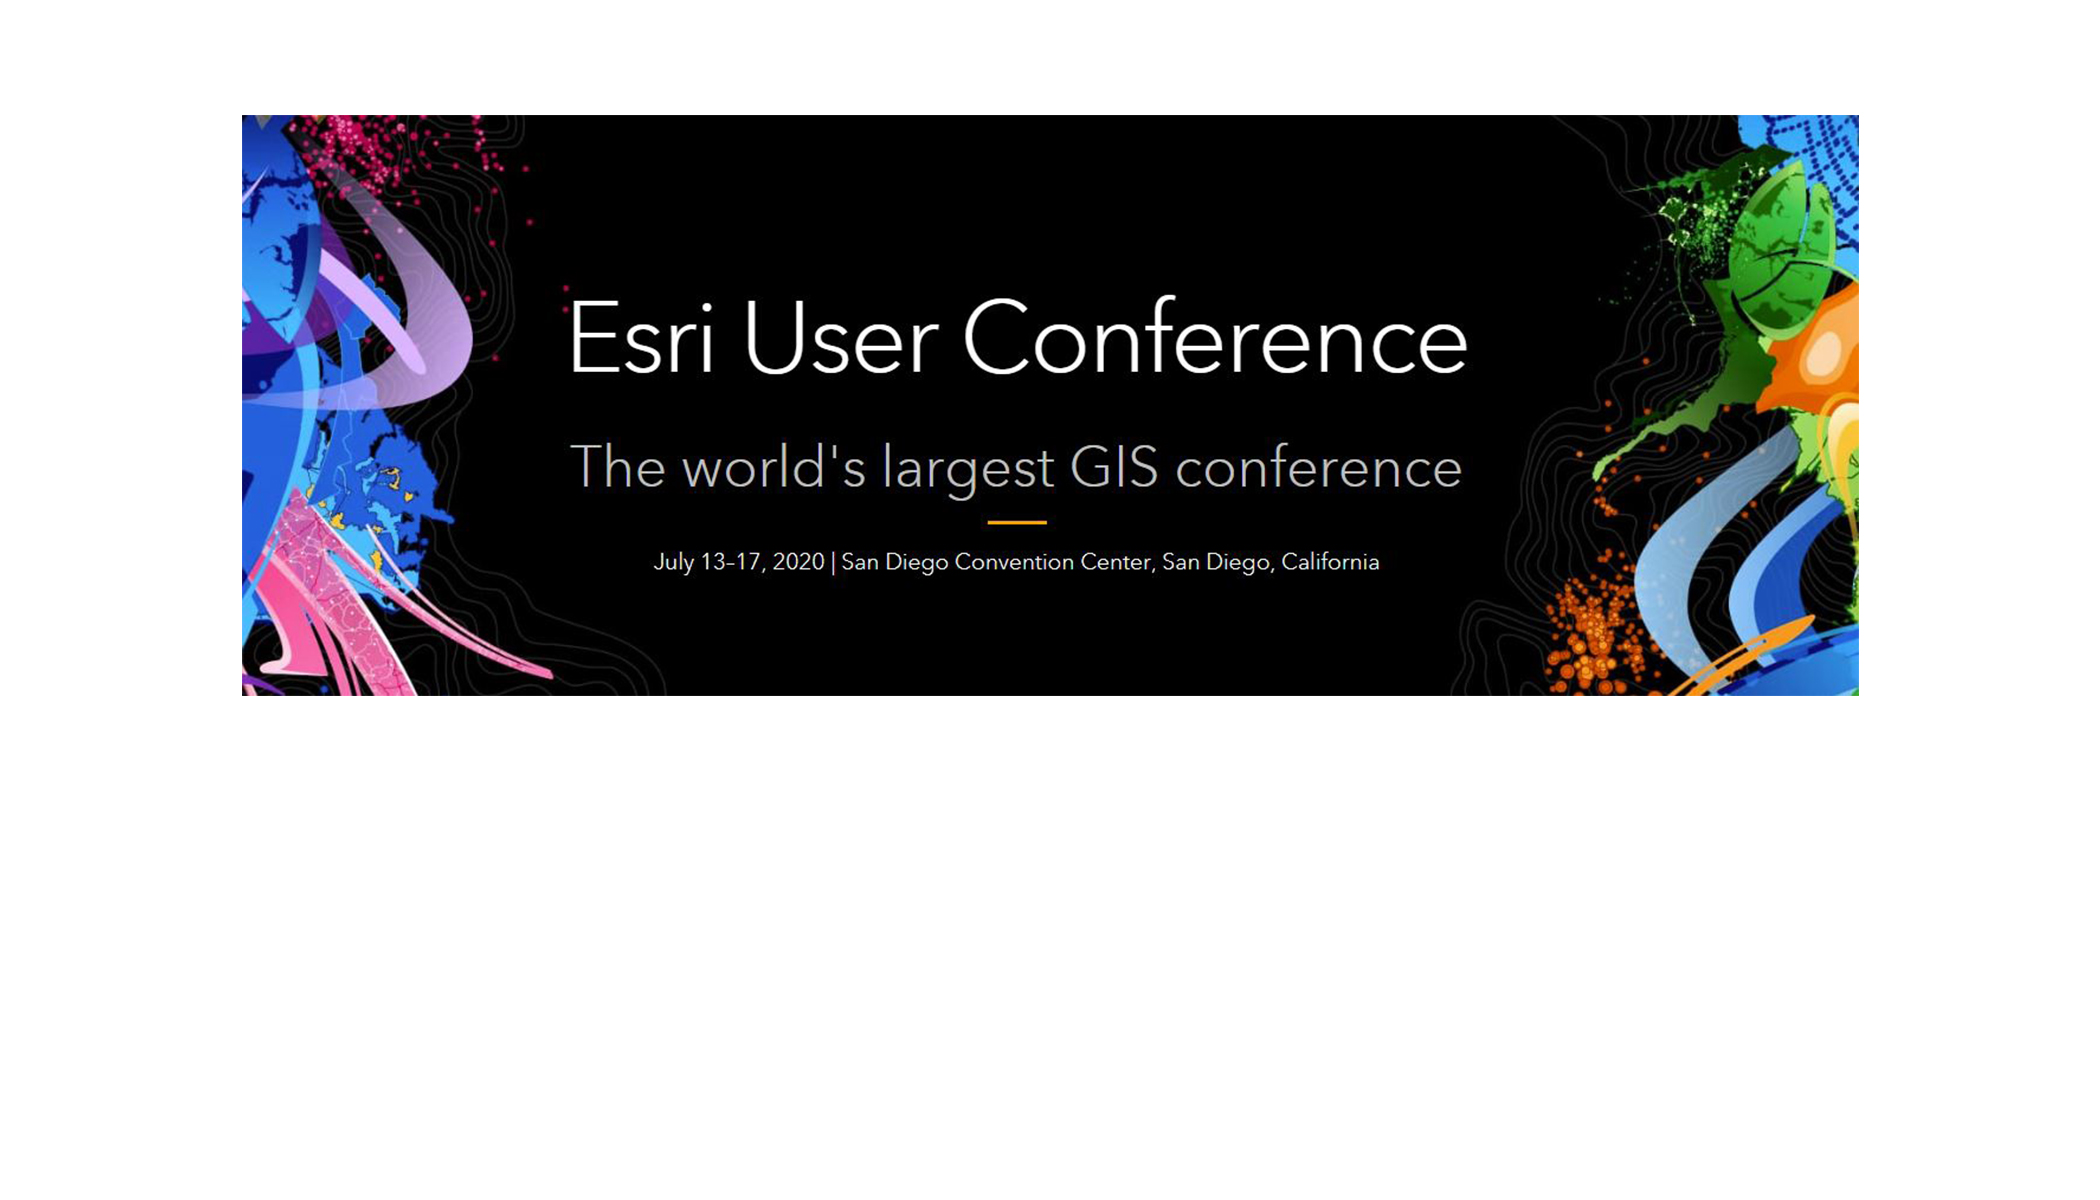 Pix4D at Esri User Conference 2020